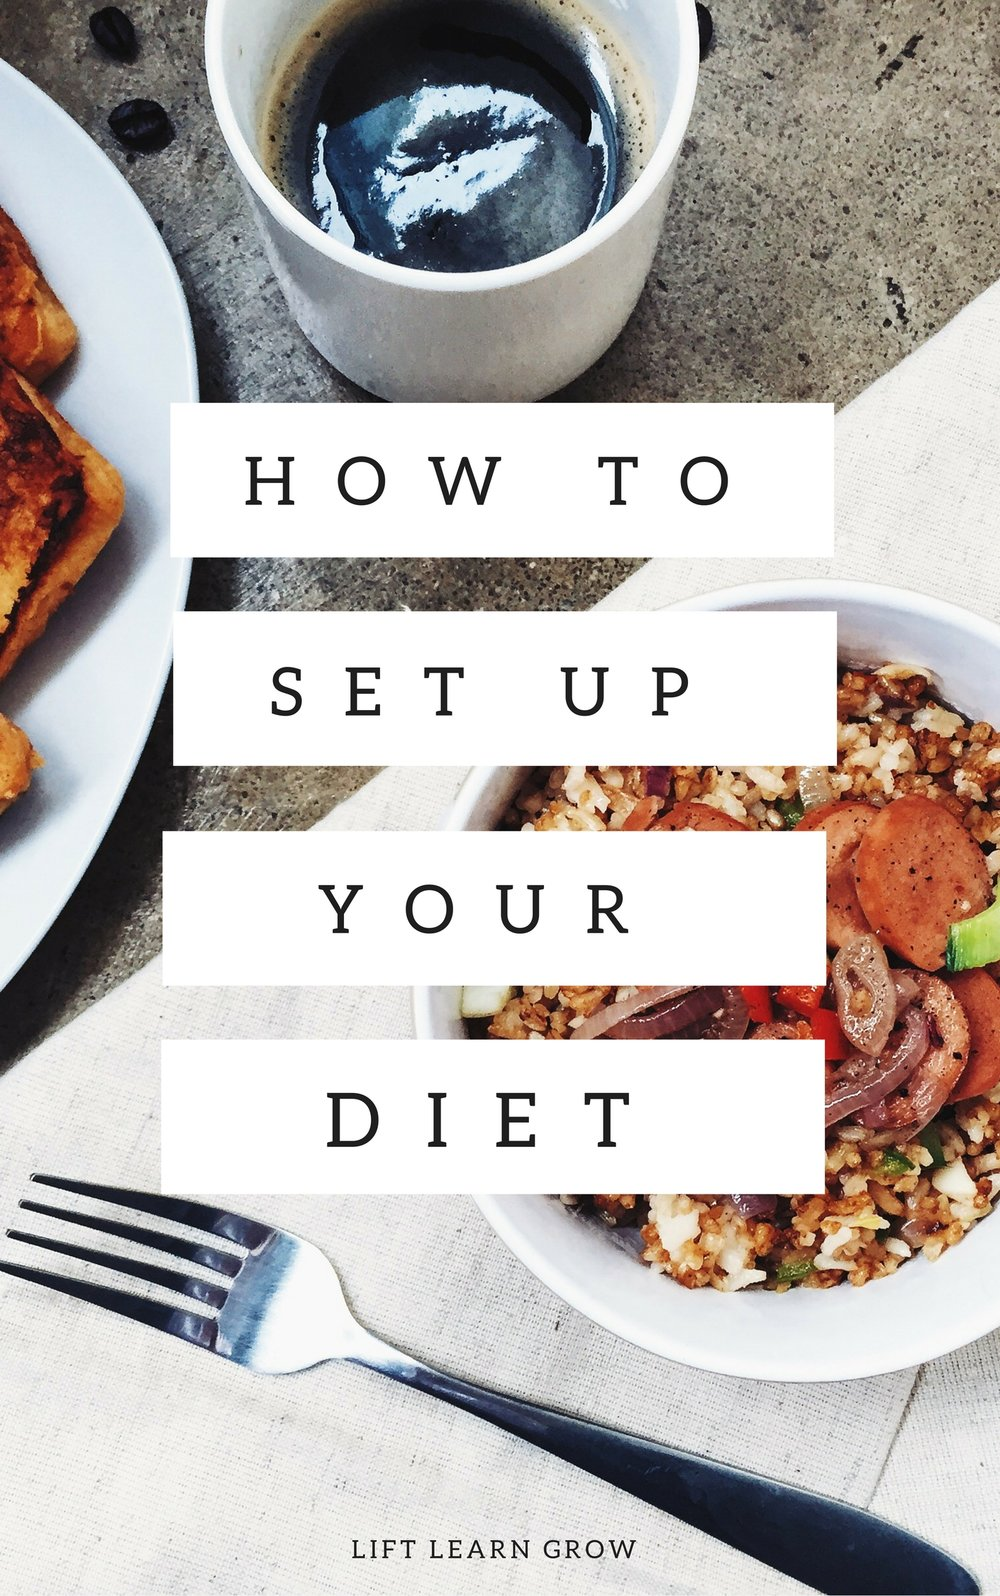 How To Set Up Your Diet